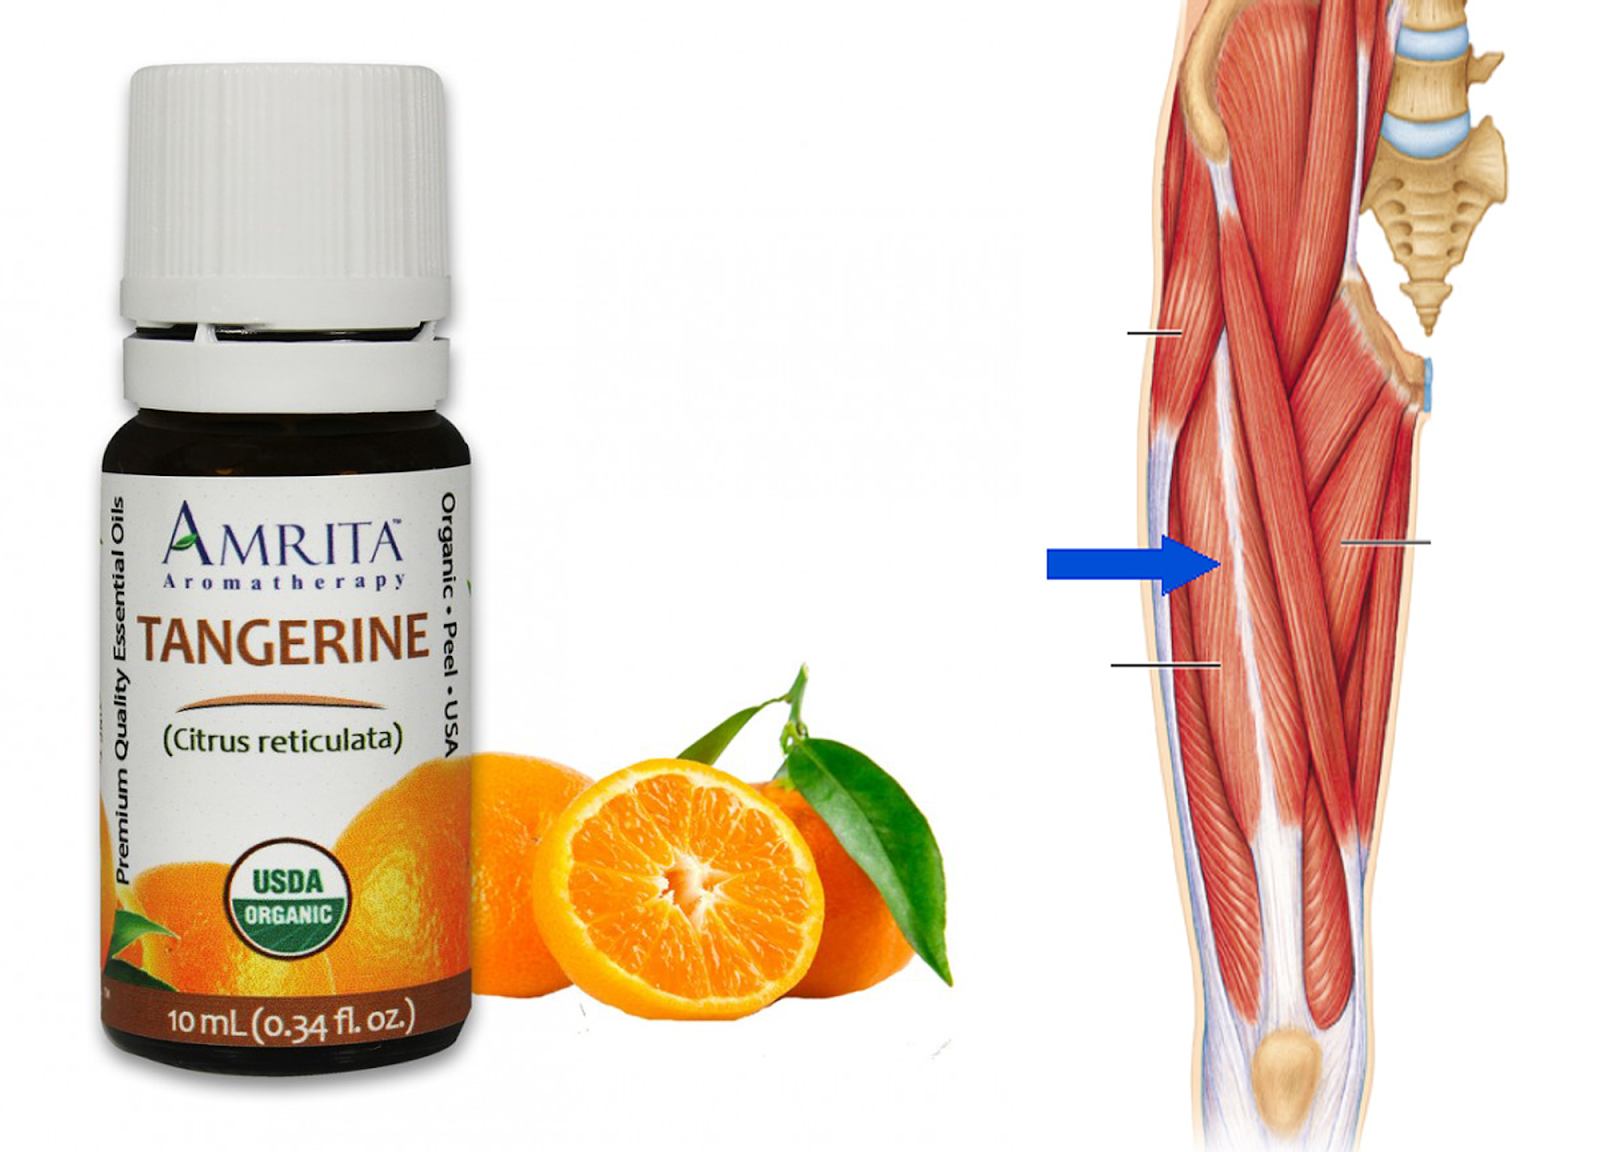 tangerine oil for cellulite